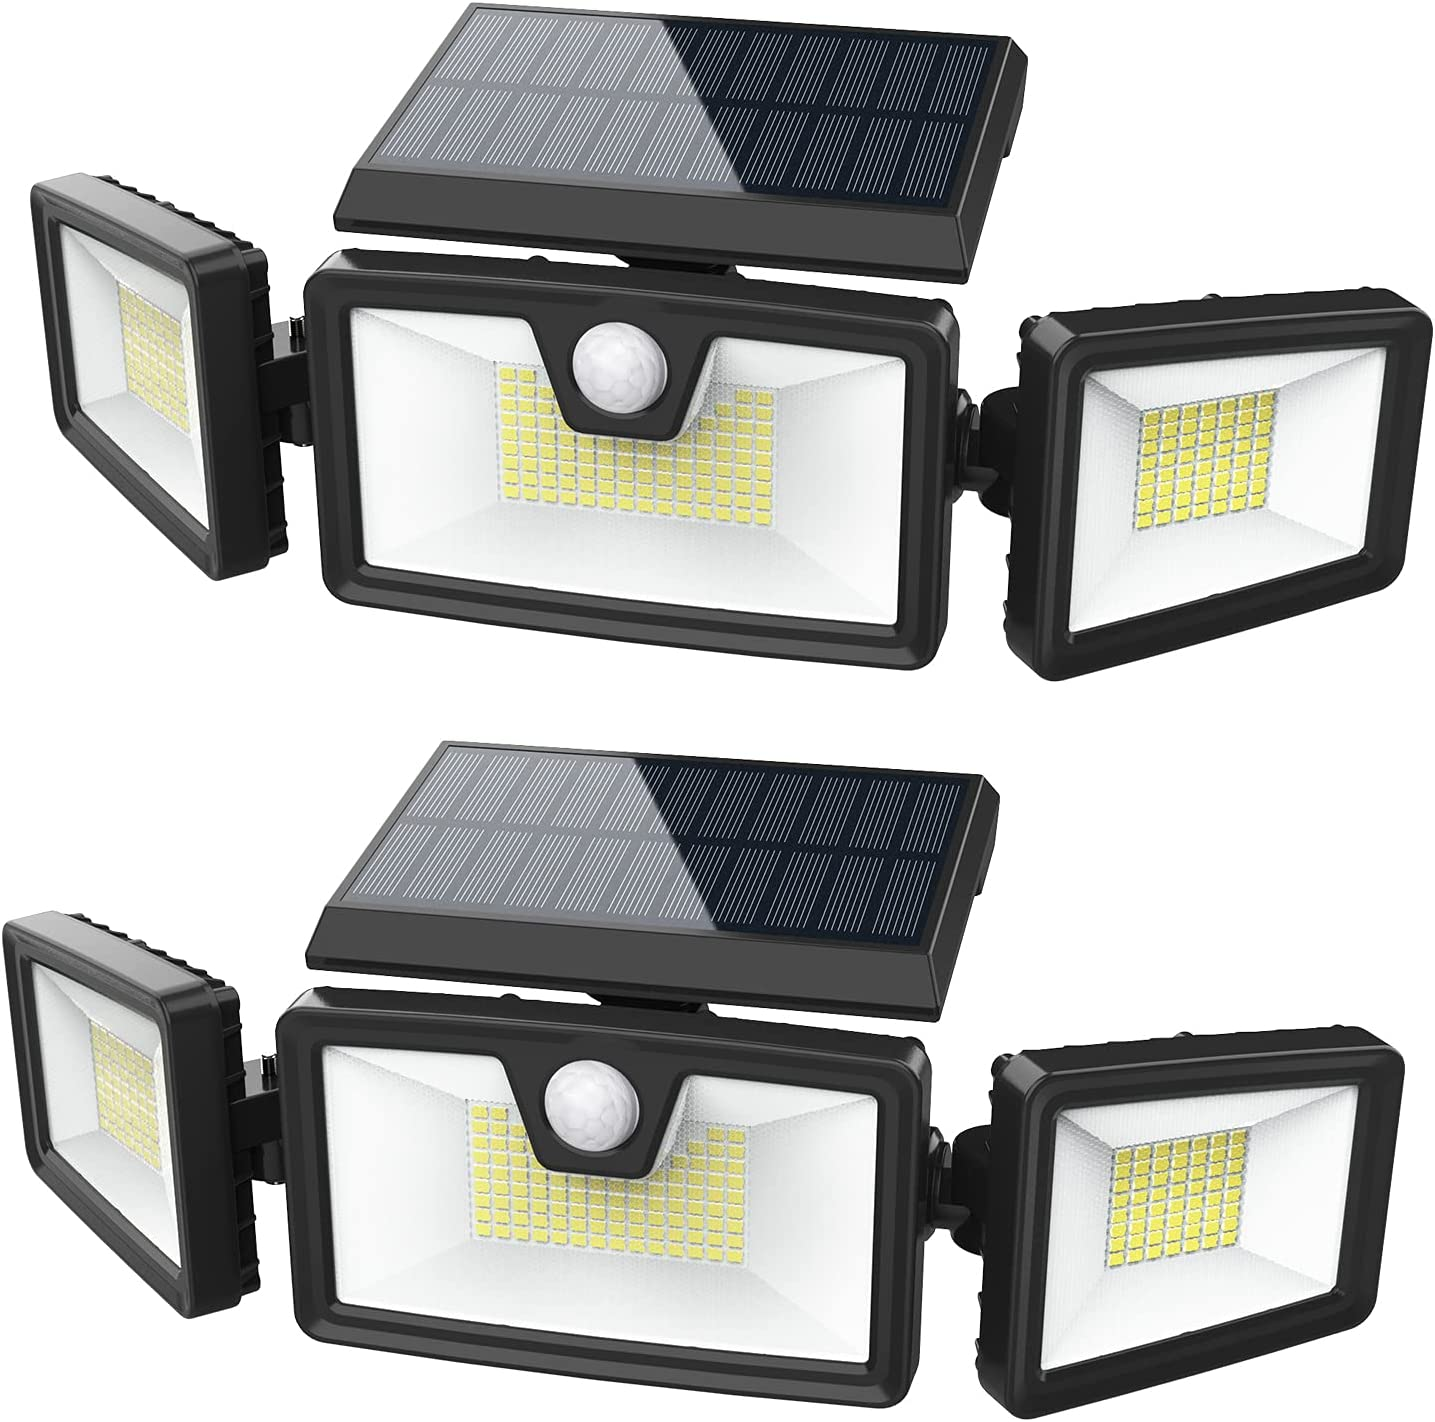 LKESBO Solar Motion Lights Outdoor Sensor 2 Pack 188 LED Solar Powered Flood Lights 2000LM Waterproof Solar Security Lights with 3 Adjustable Heads for Outside Yard Garden Patio Path